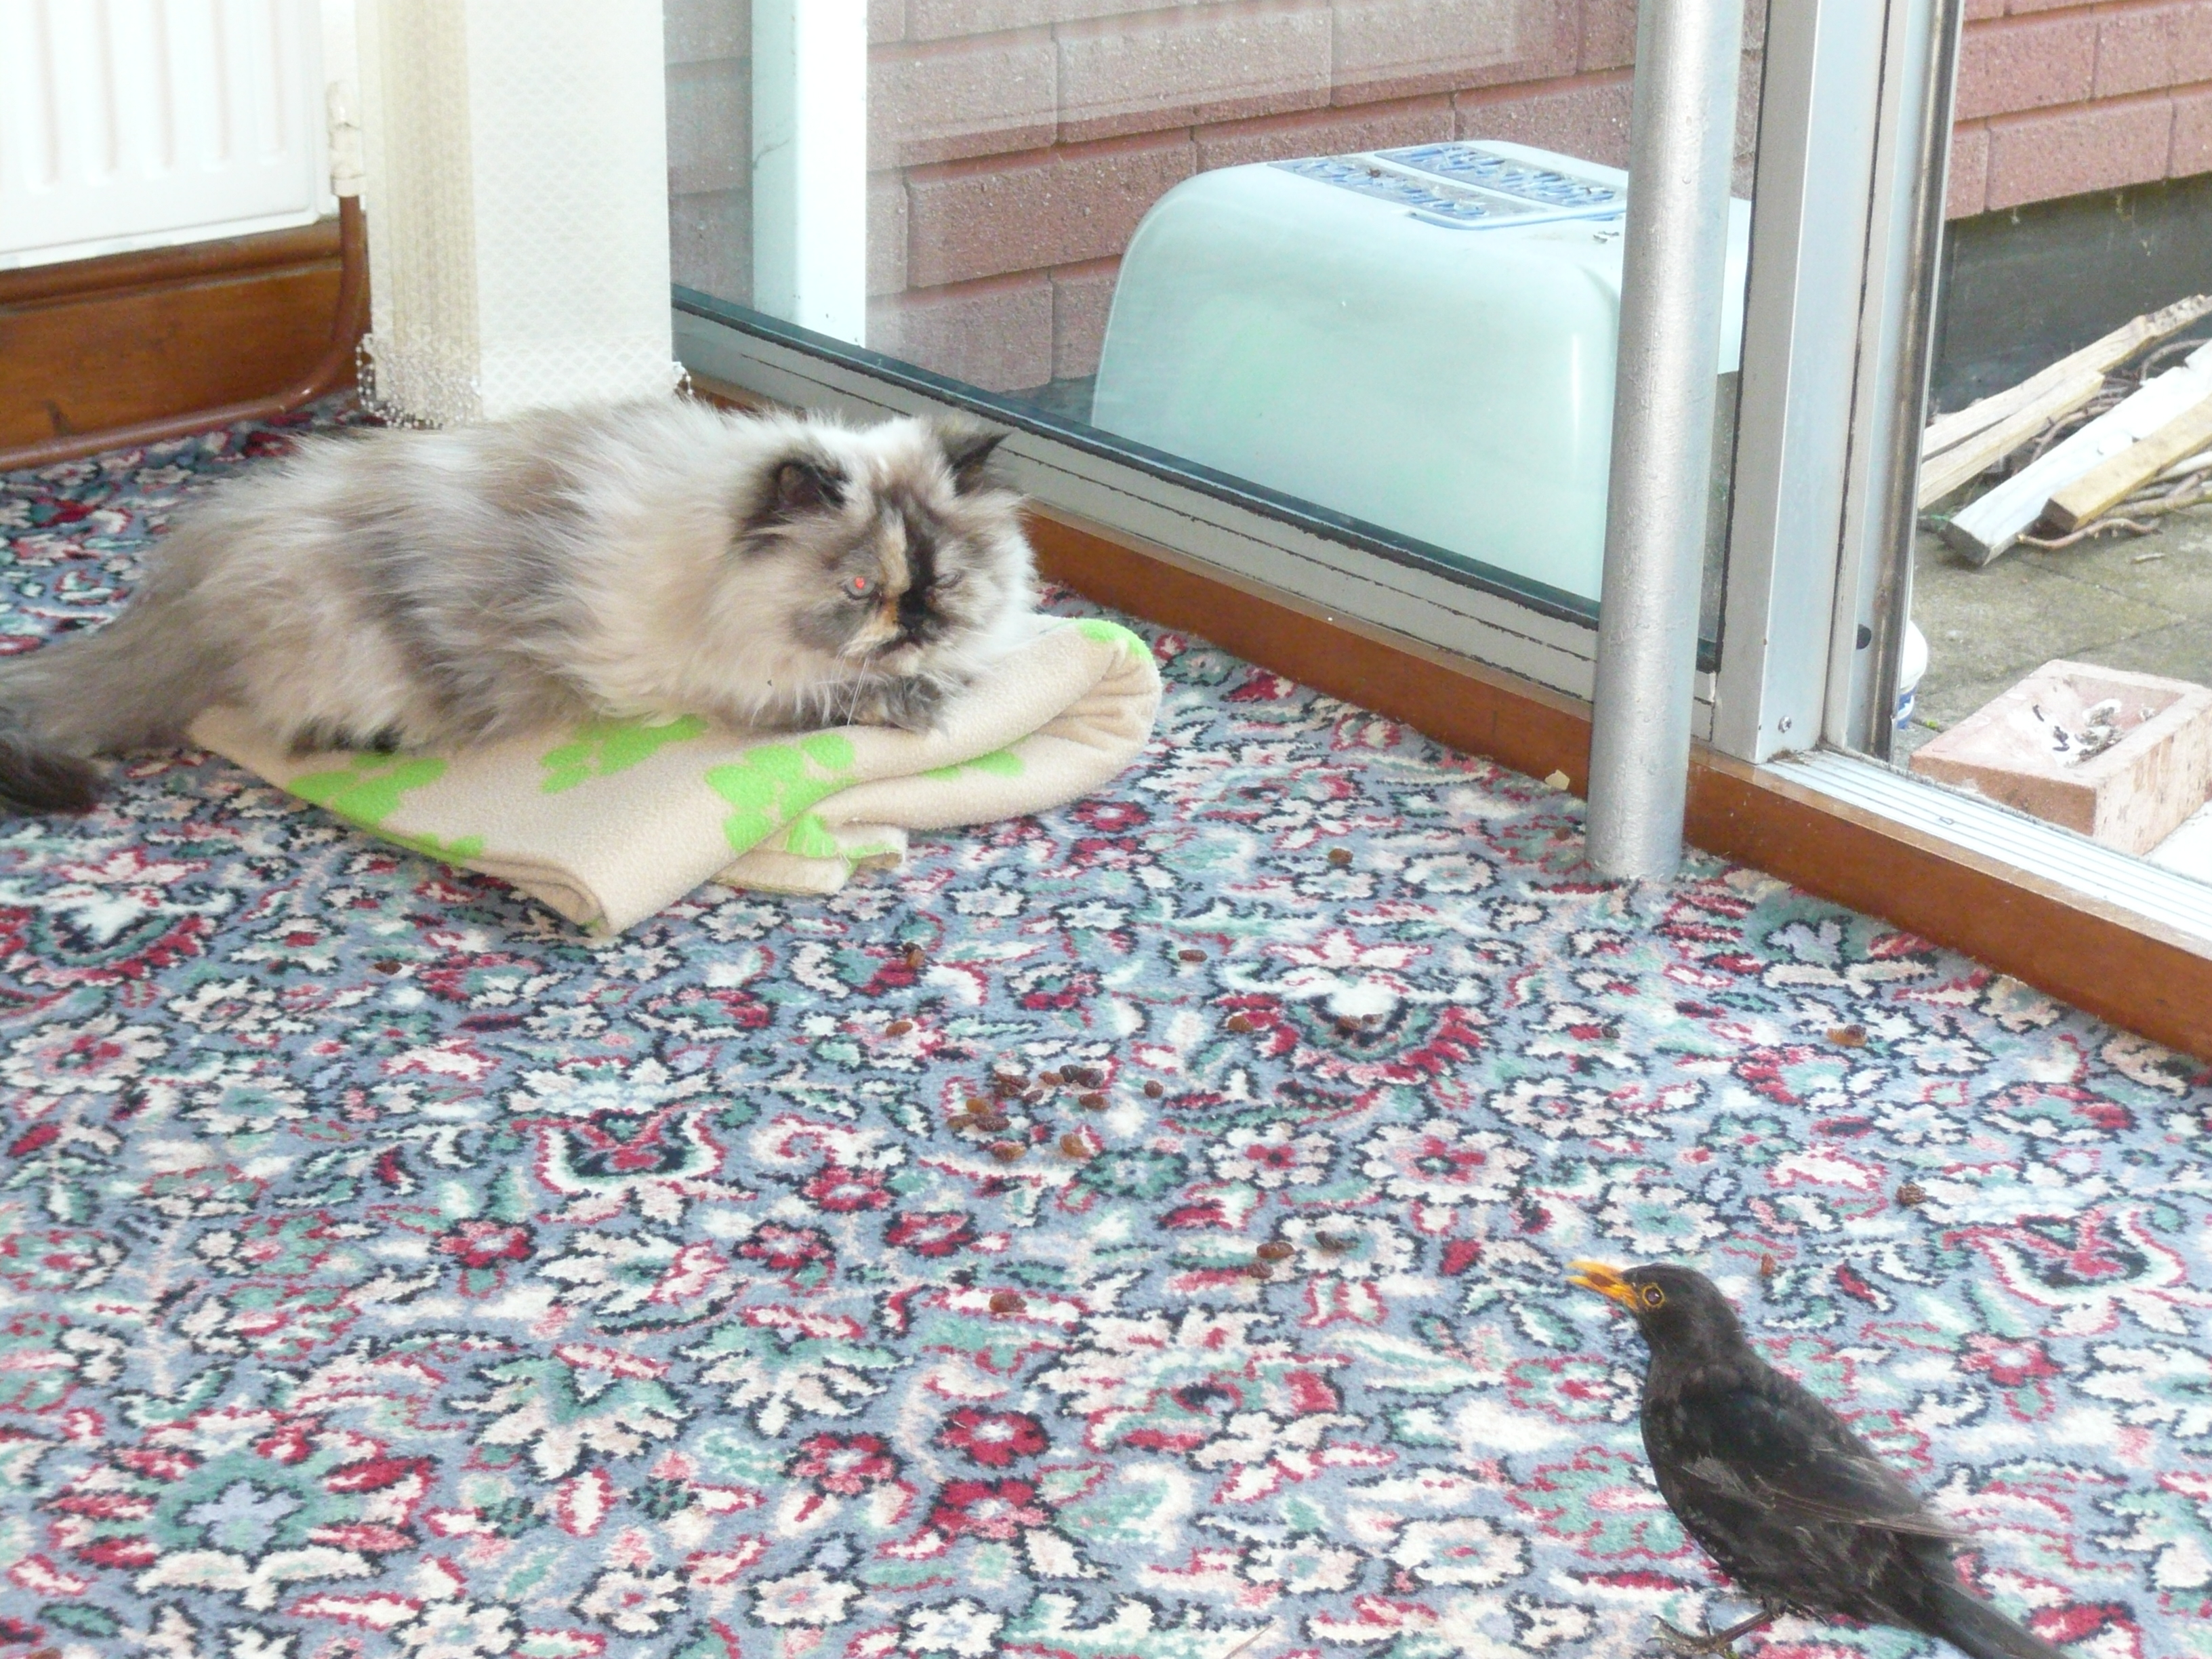 Dumpty and a tame blackbird on the carpet